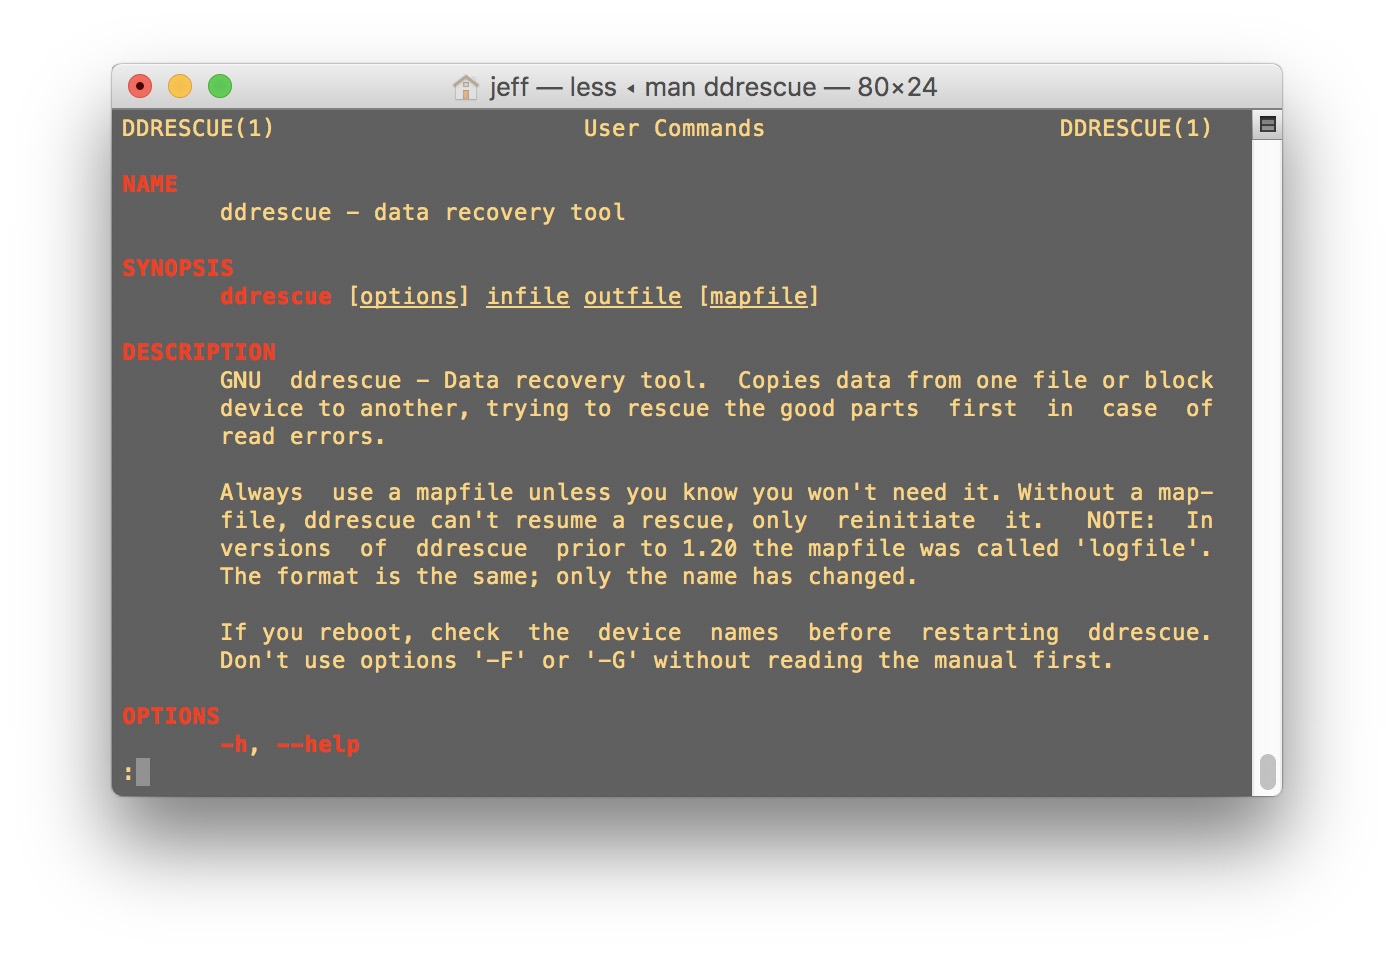 ddrescue for the Mac in Terminal